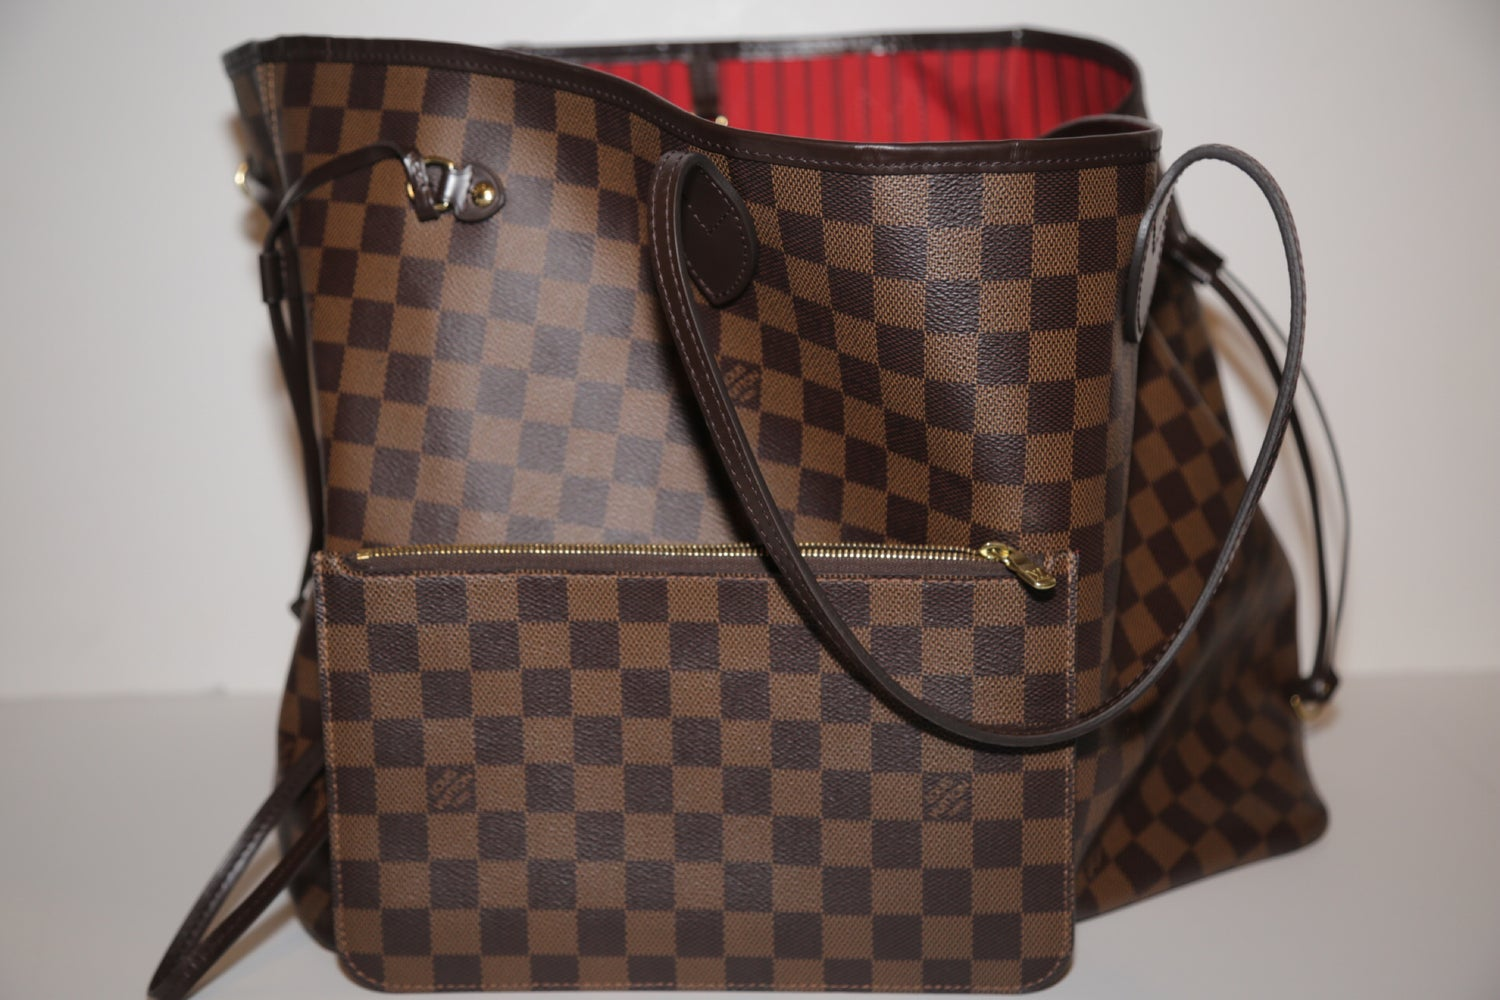 Image of LOUIS VUITTON NEVERFUL